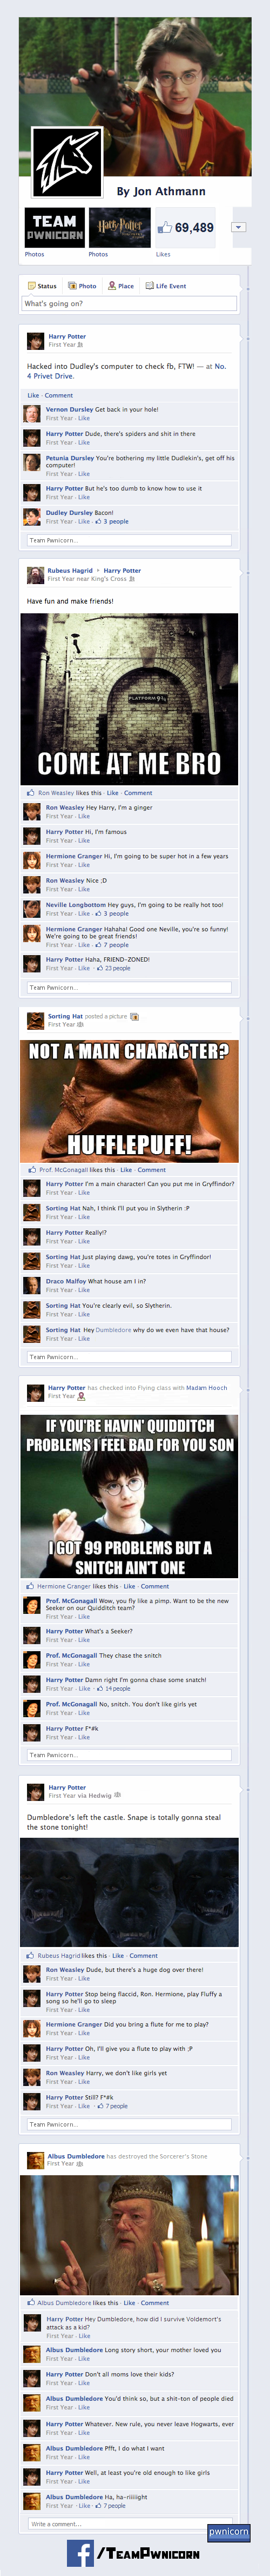 Harry Potter and the Sorcerer's Stone Told Through Facebook by Team Pwnicorn 3